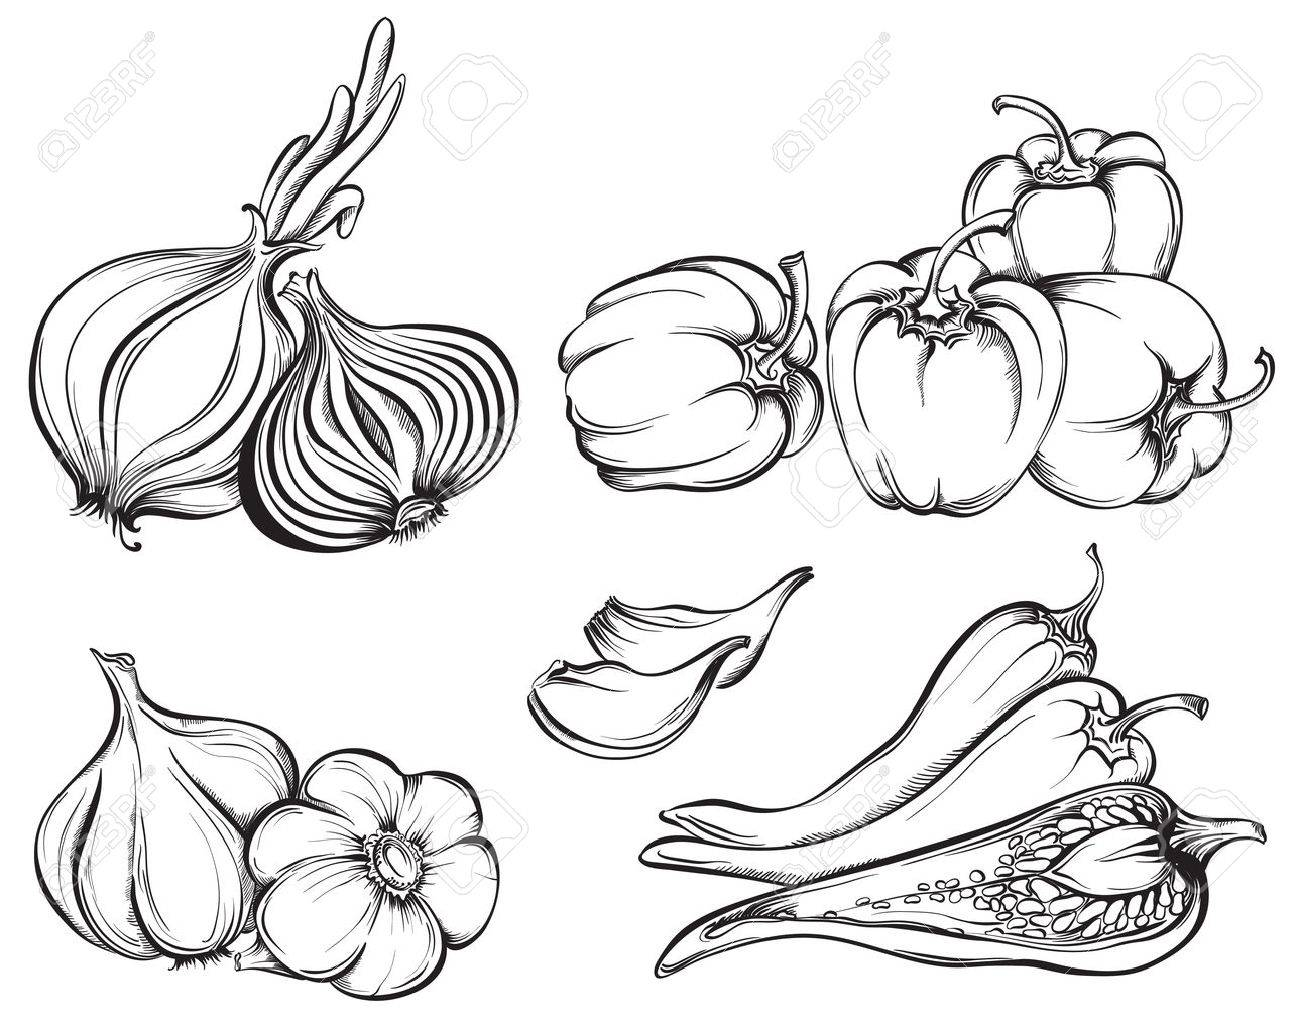 1300x1032 Hand Drawn Vegetables Set. Collection Of Spices Paprika, Chili